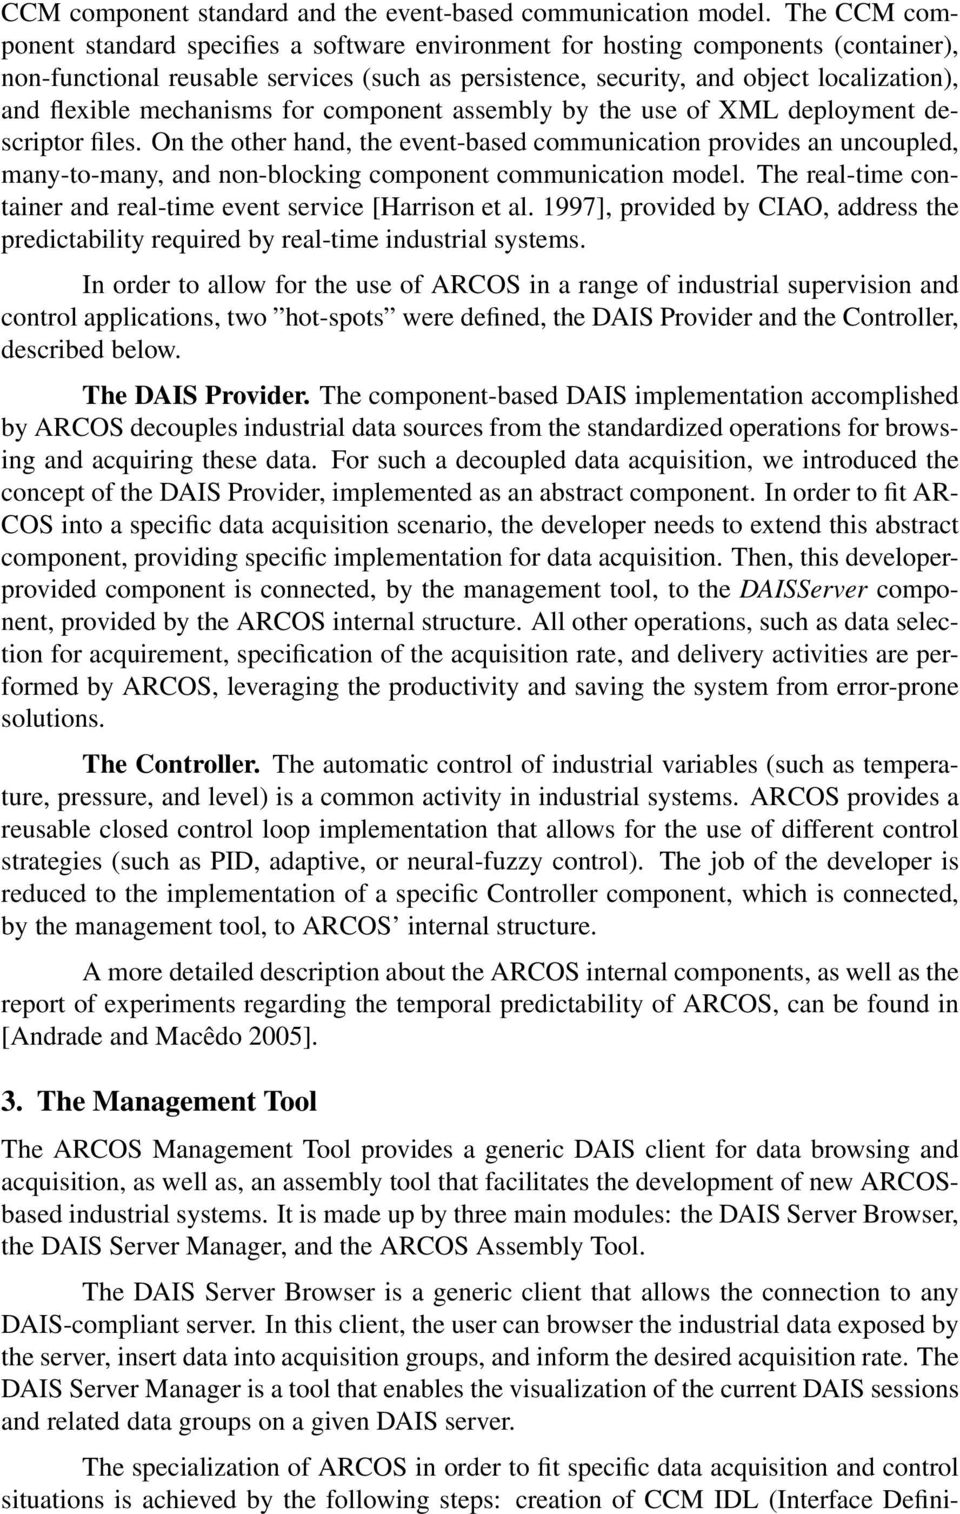 mechanisms for component assembly by the use of XML deployment descriptor files.